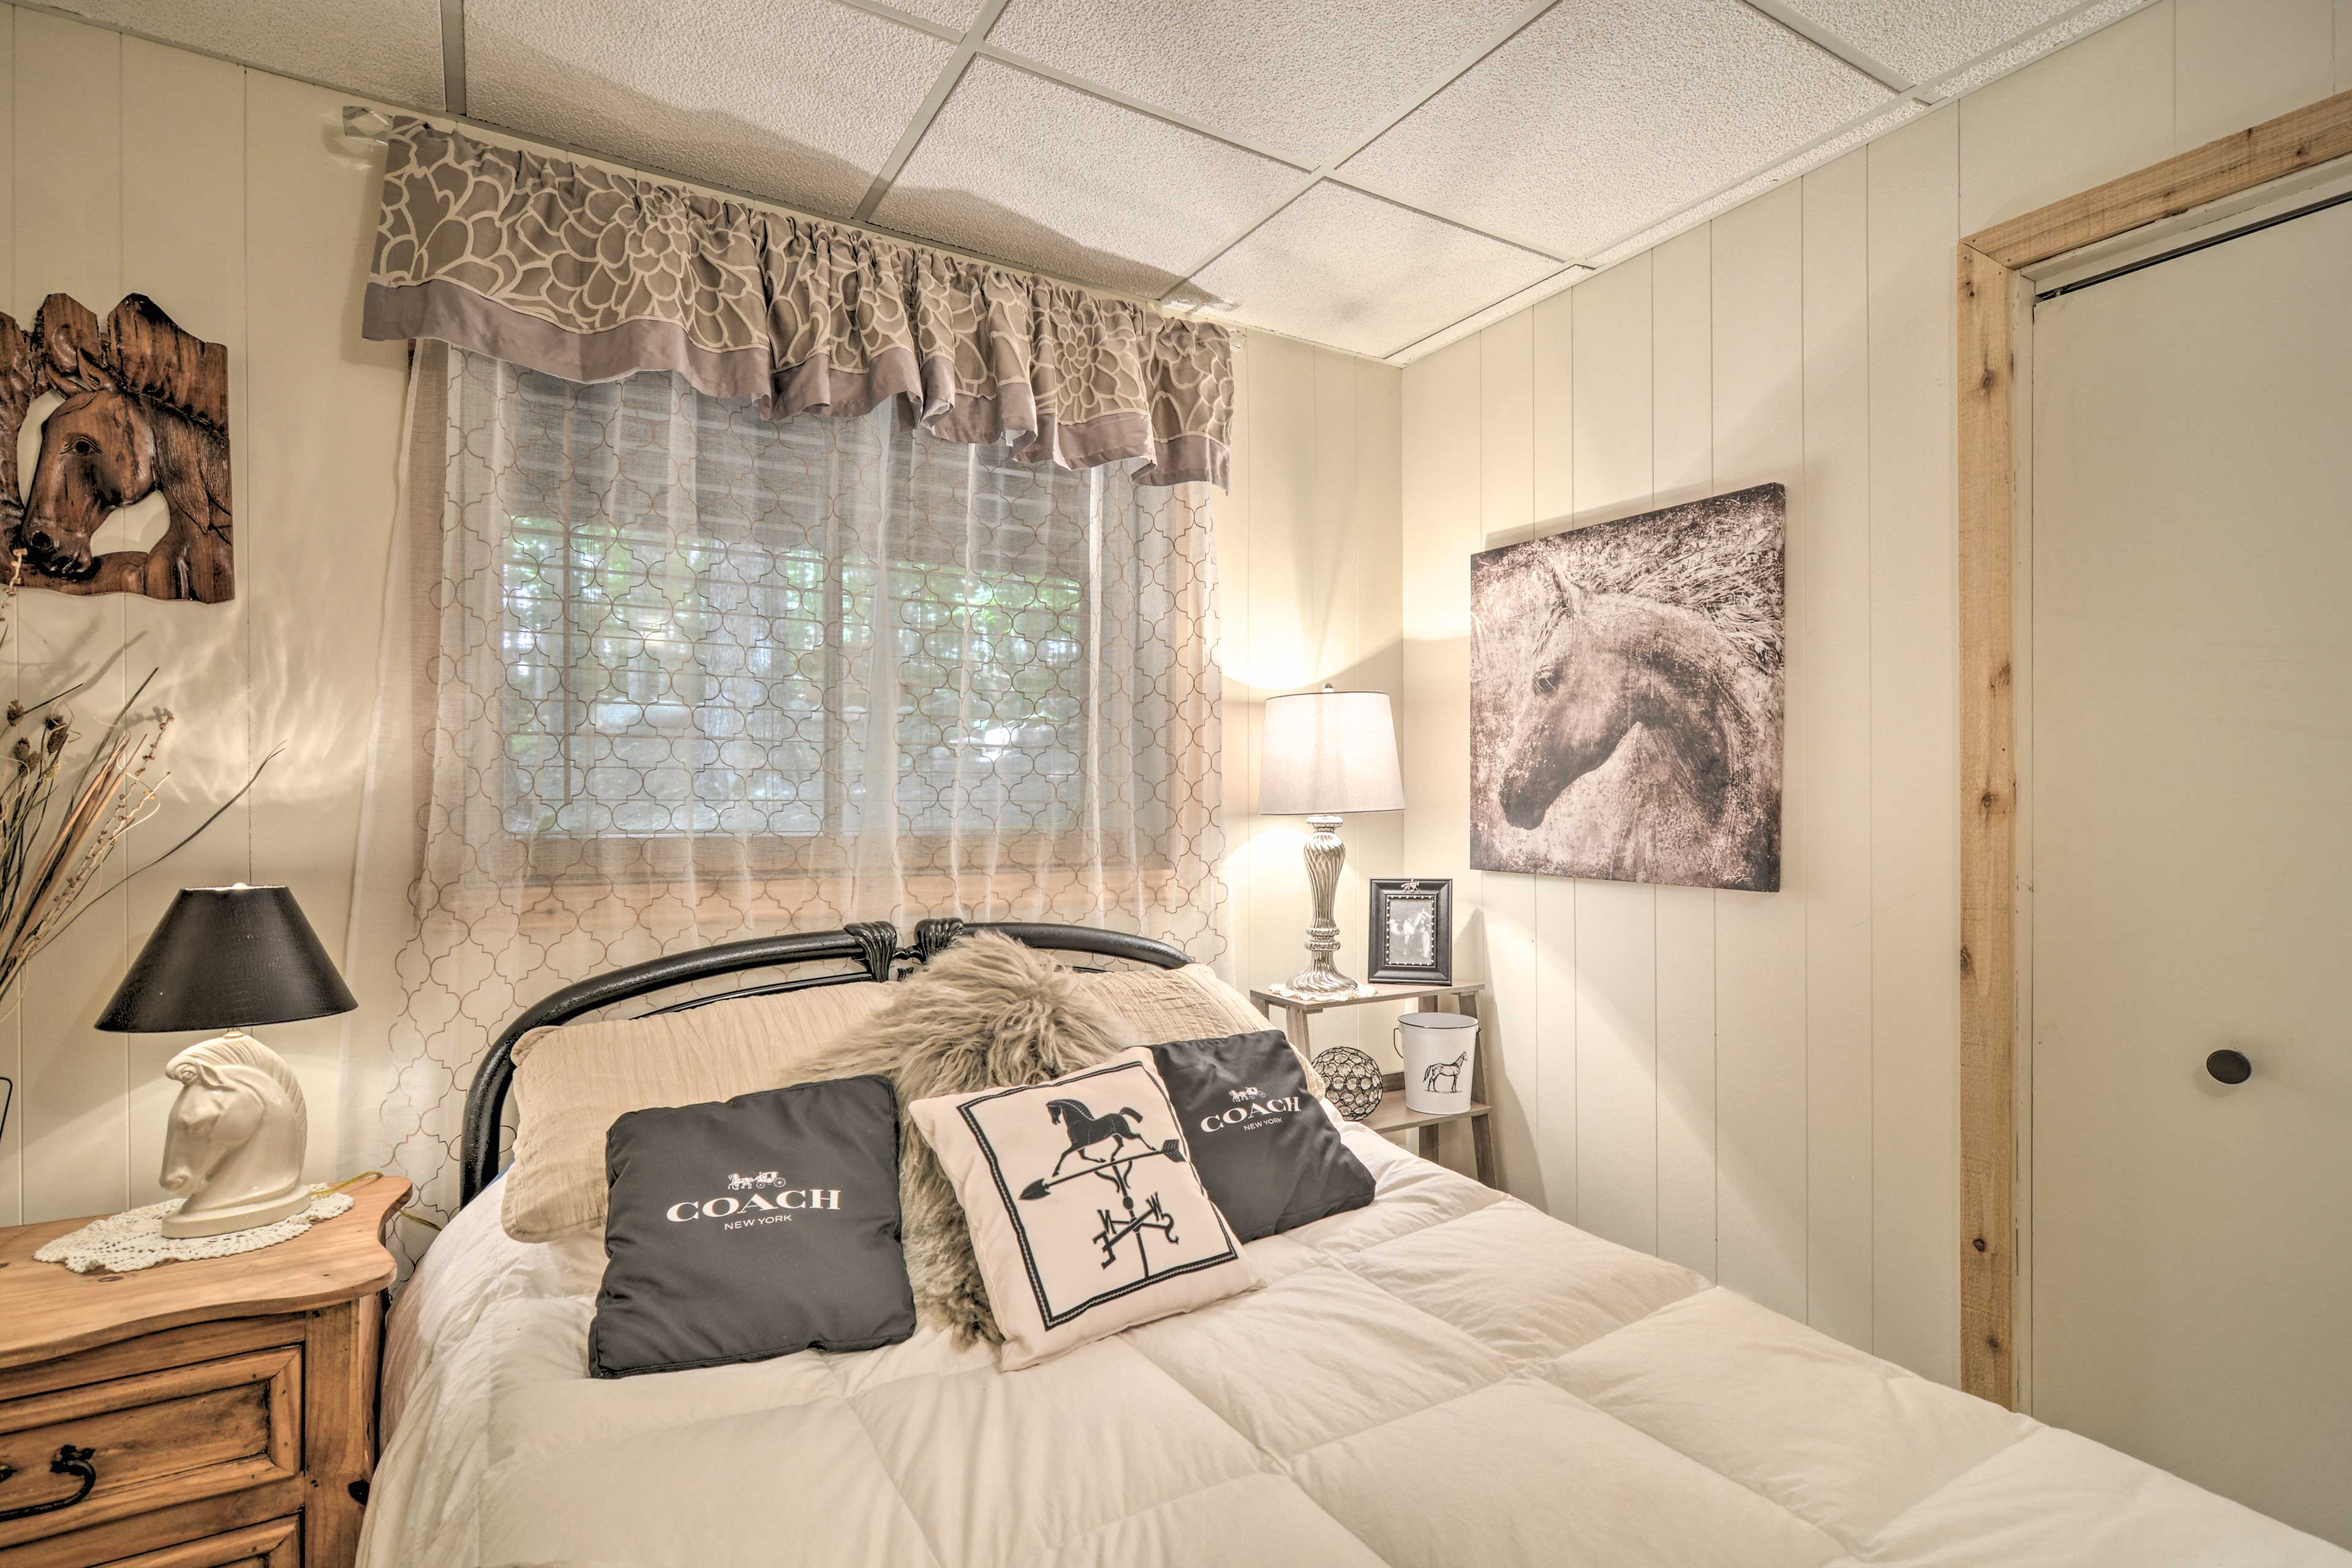 Each bedroom is beautifully appointed.